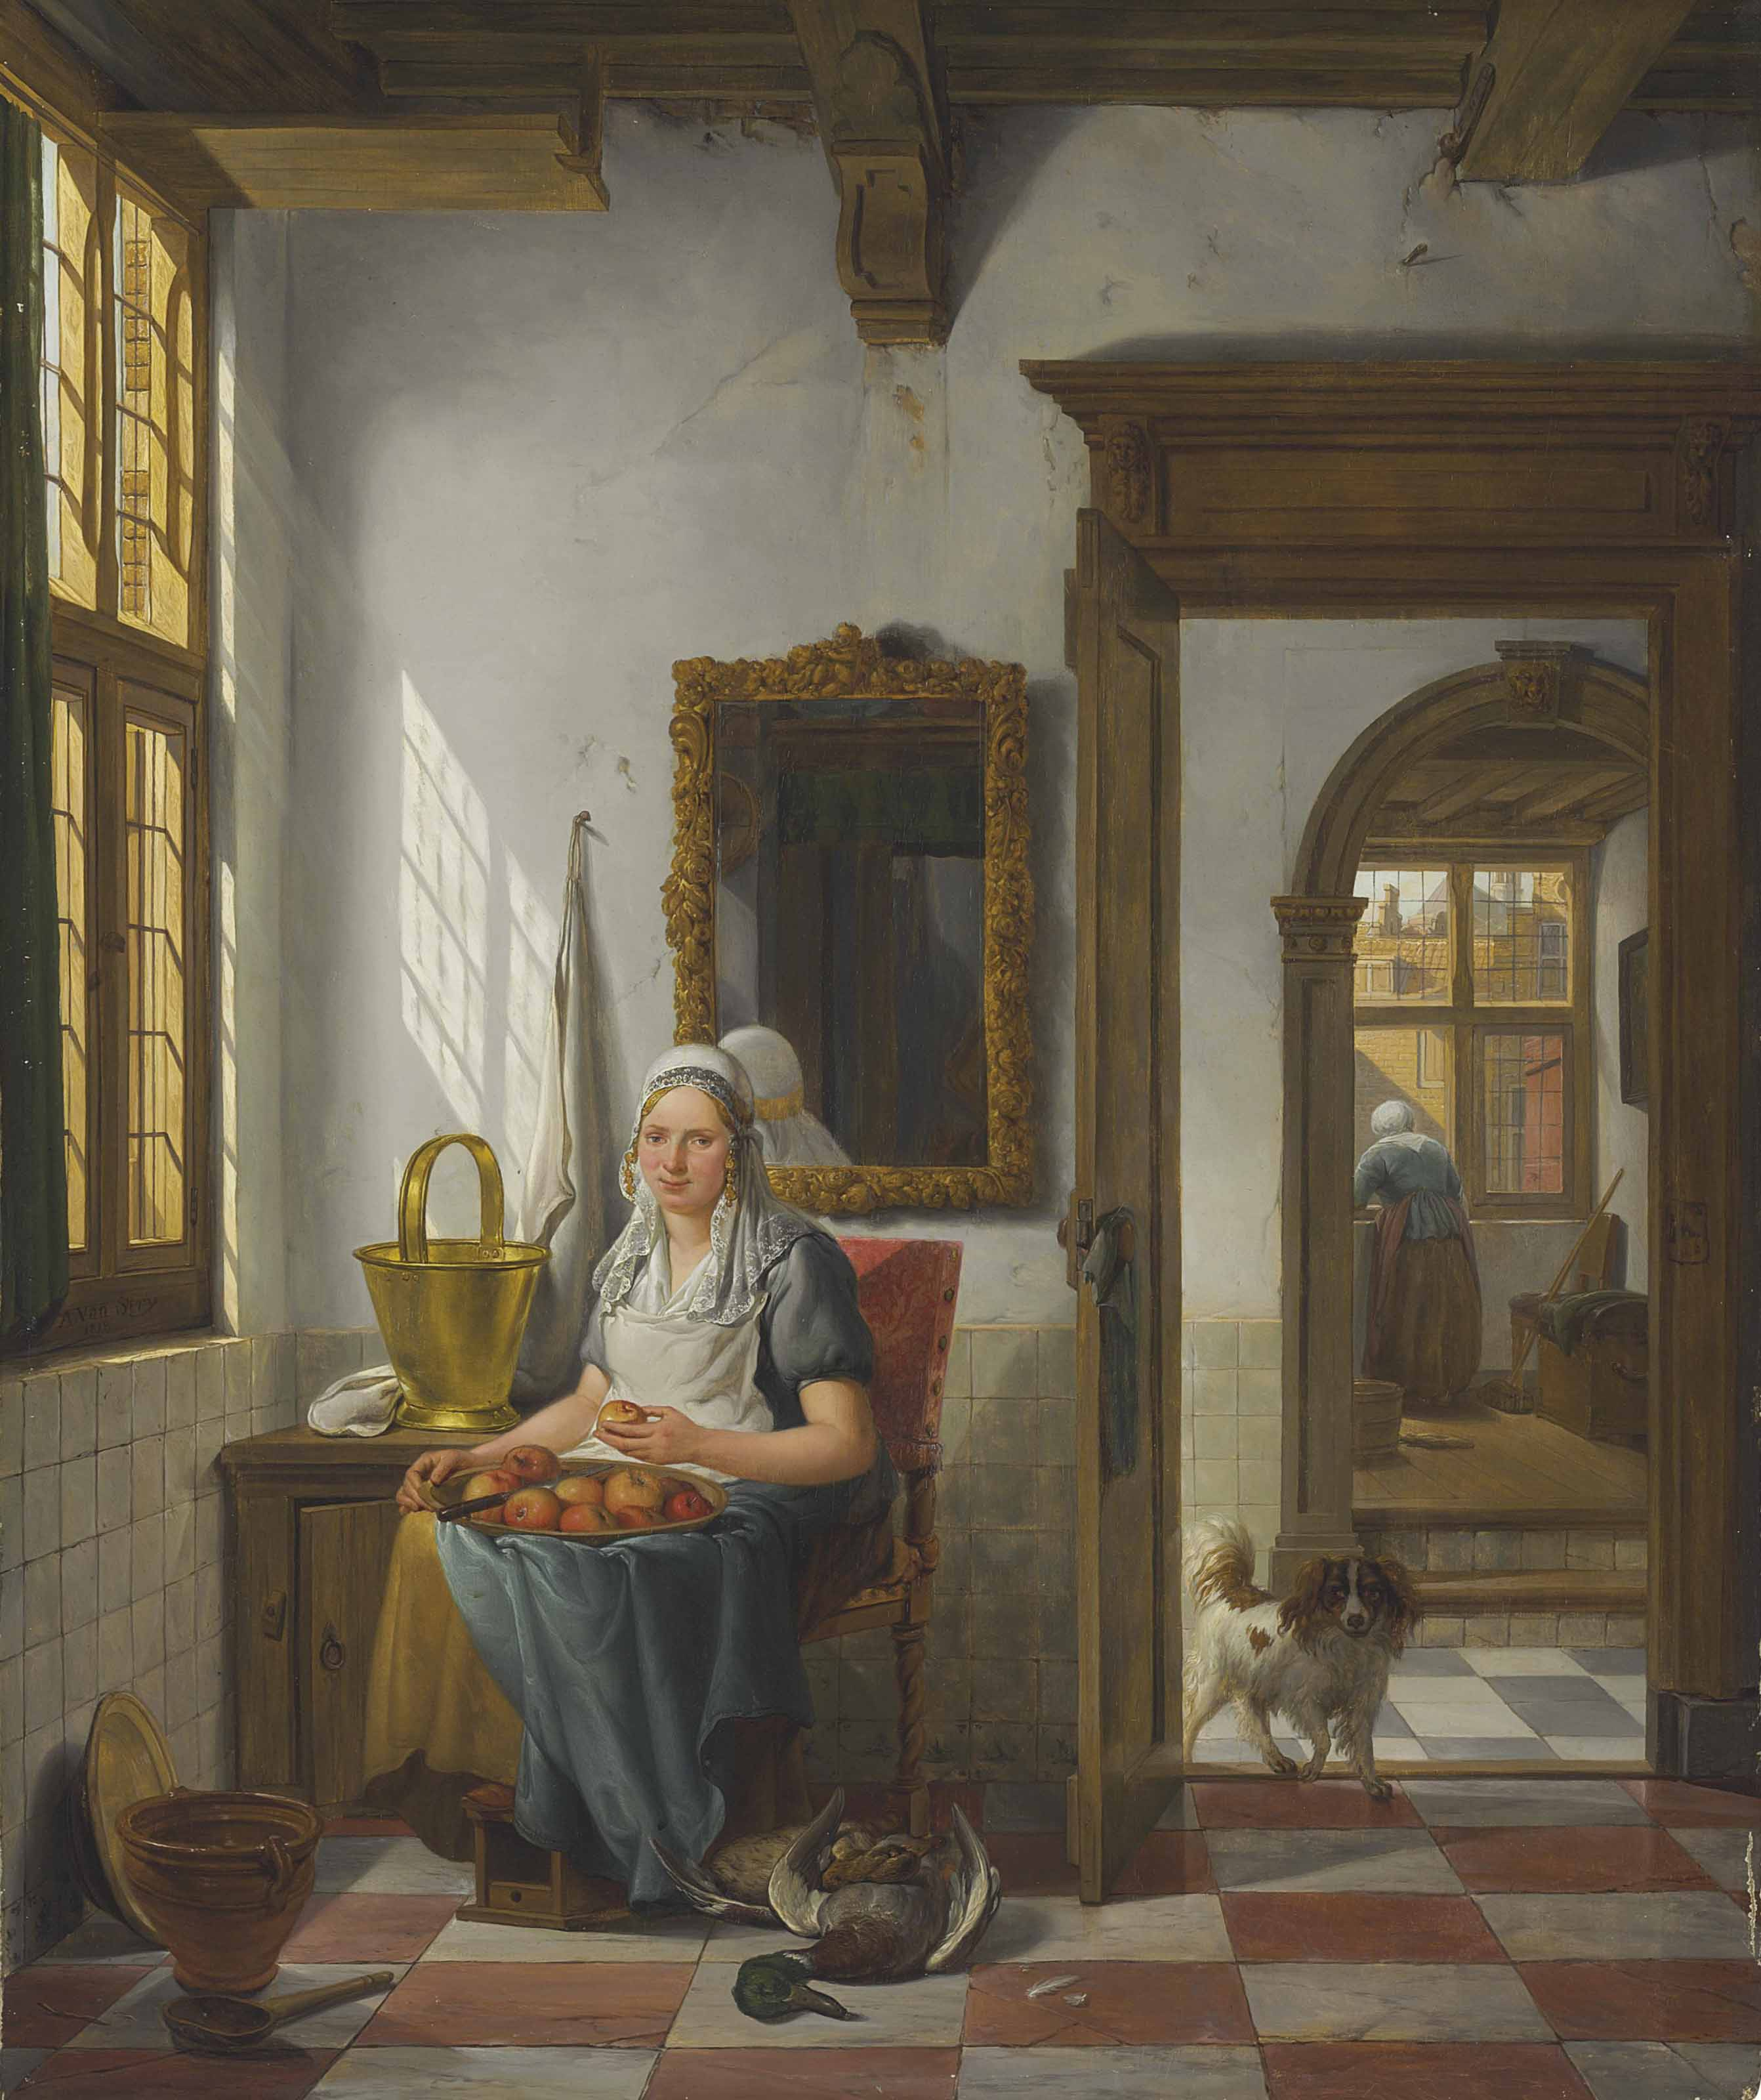 An interior with a woman peeling apples